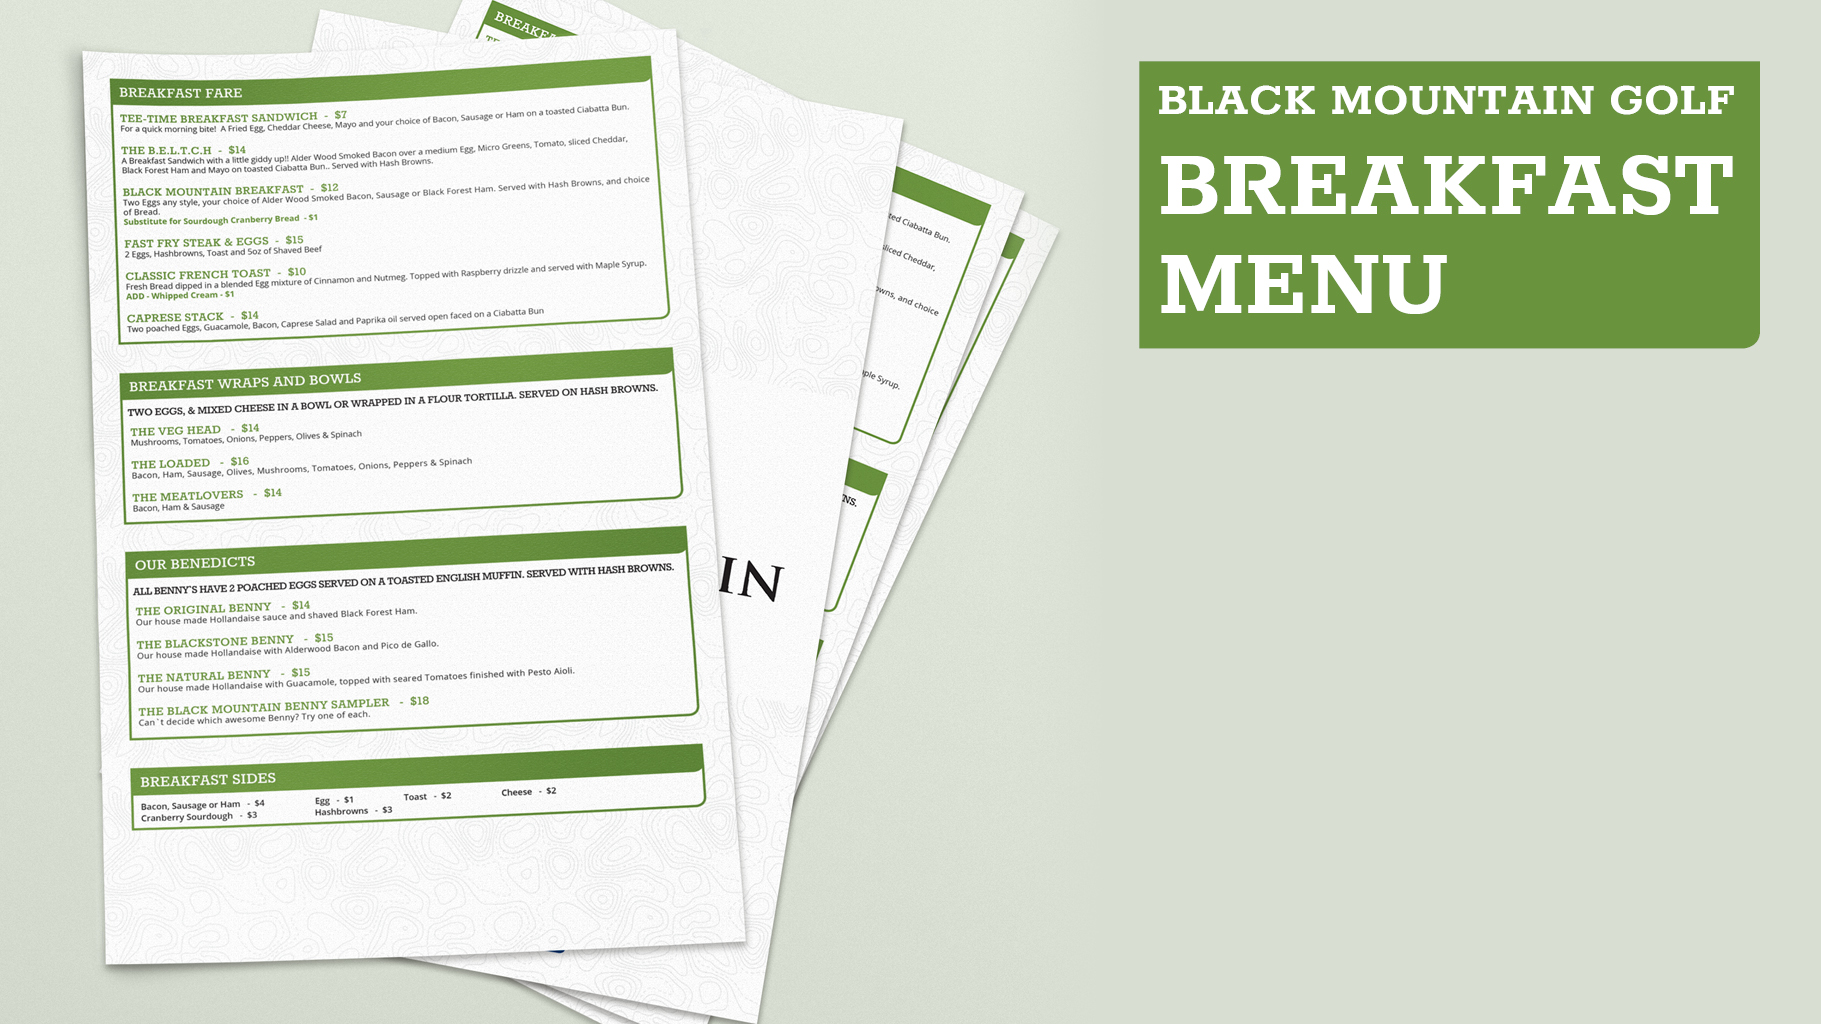 Black Mountain Breakfast Menu